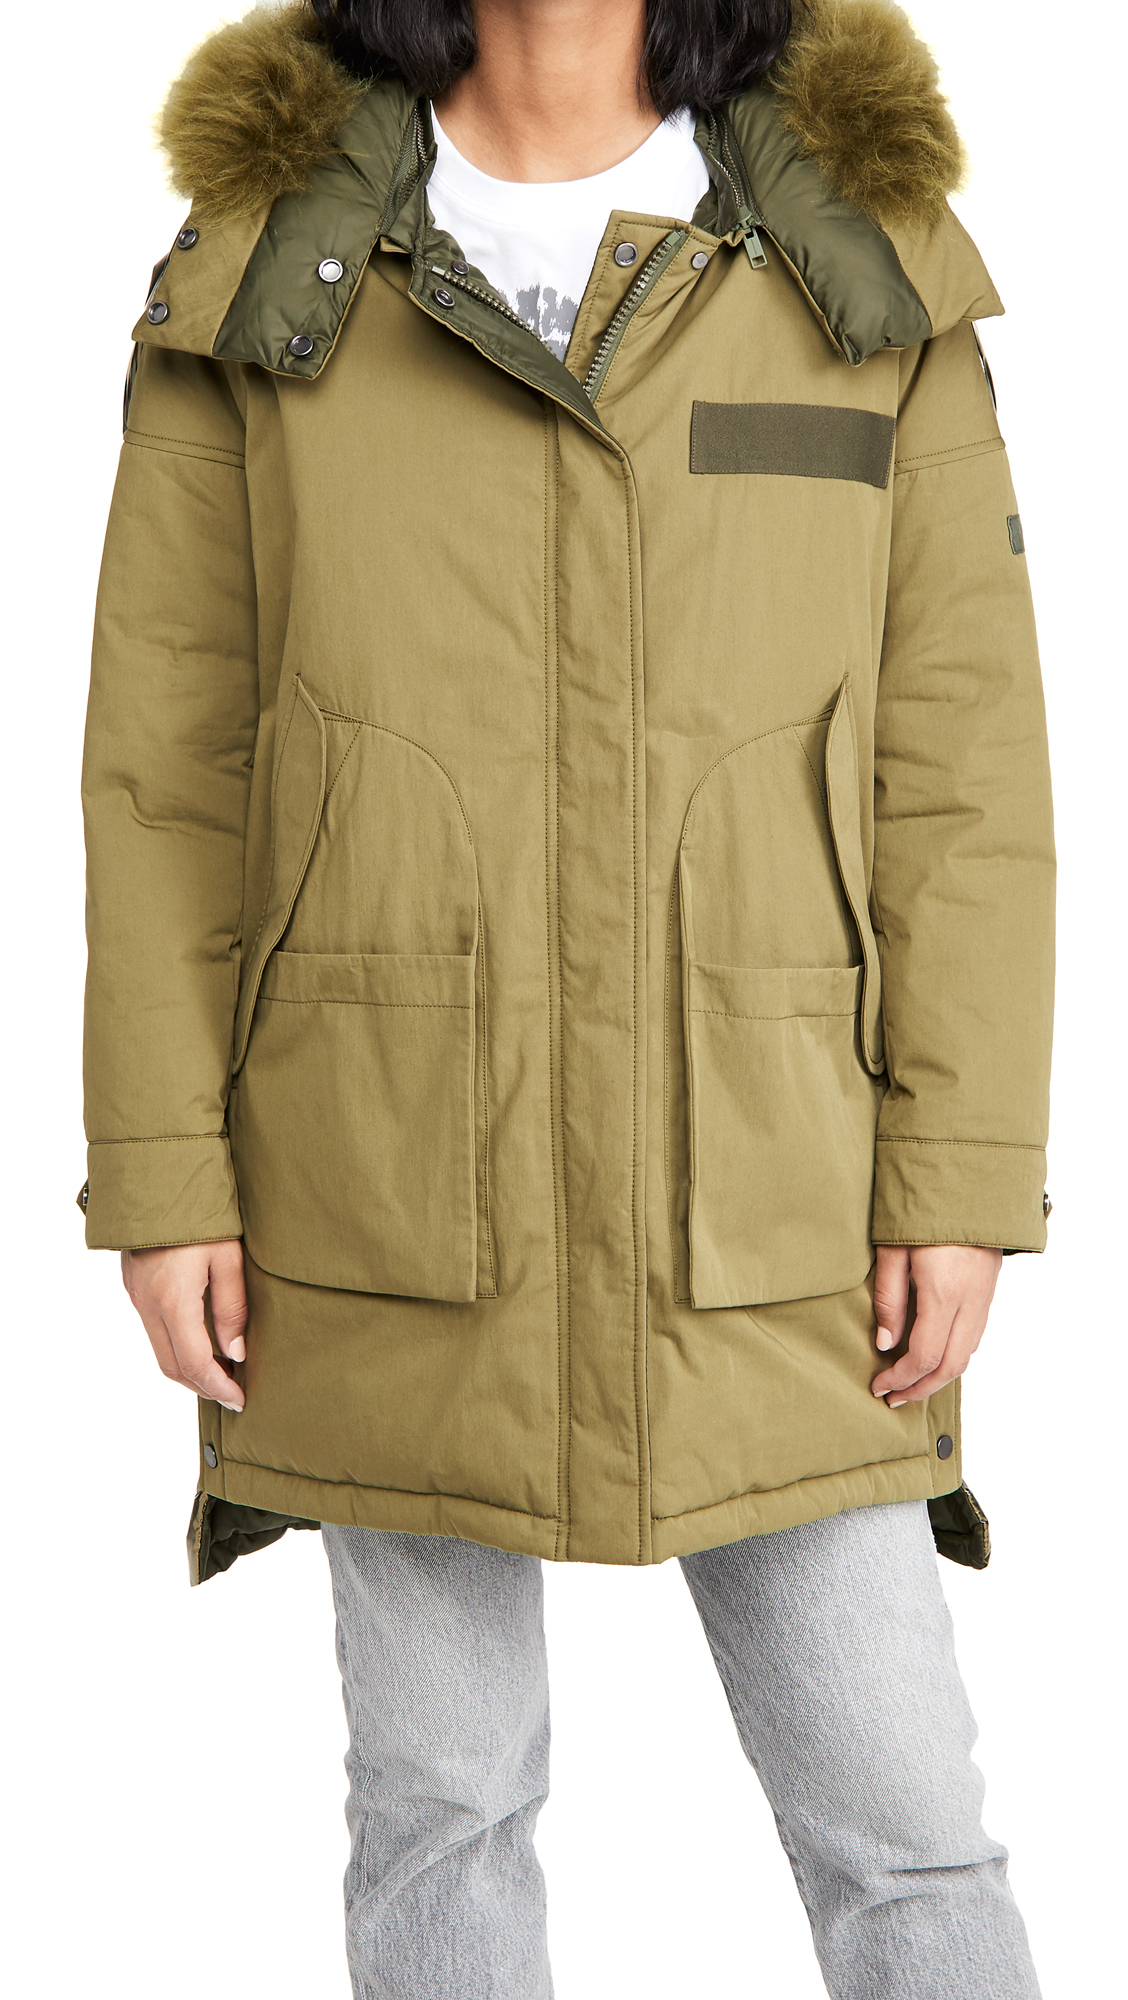 Army By Yves Salomon Long Puffer Jacket